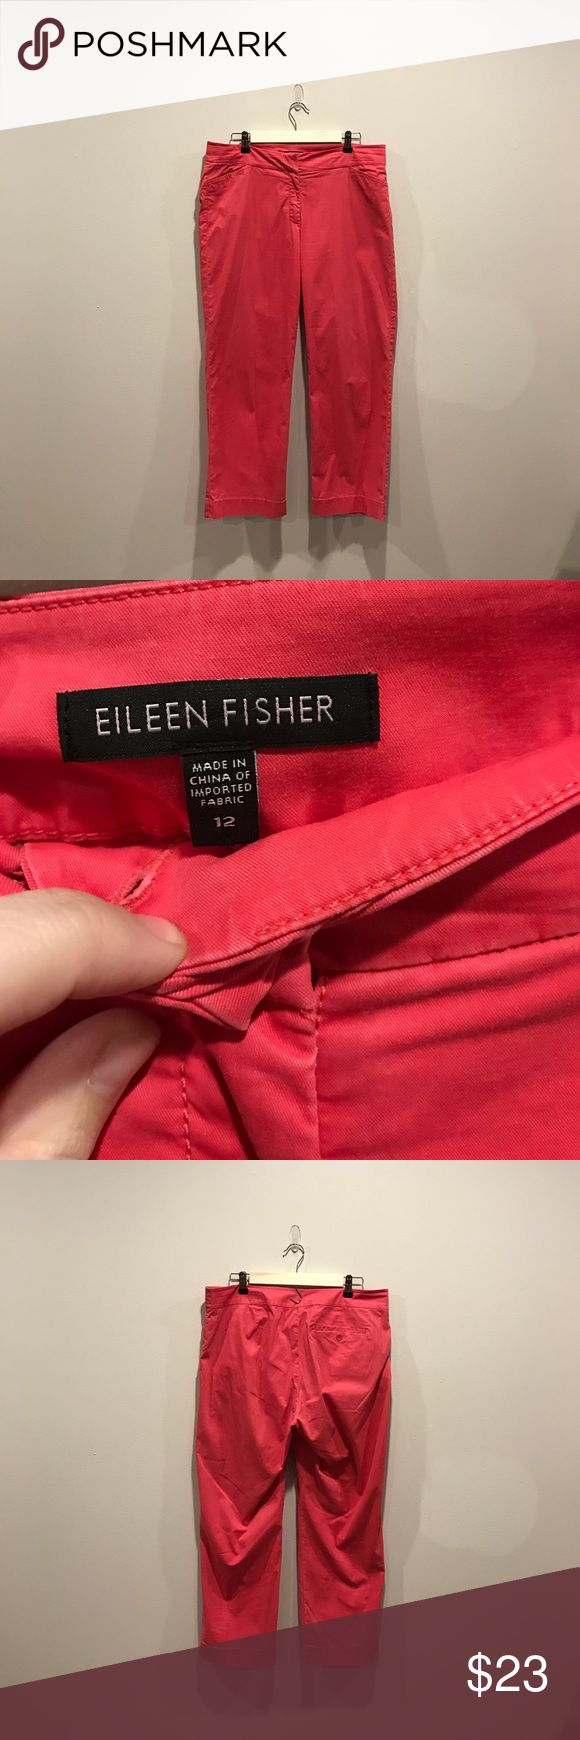 "Eileen Fisher Coral Capri Pants Size 12 Beautiful Eileen Fisher Capri Pants! These pants are preloved but in EUC. There is some super minor fading around seams as shown in last picture ! If you have any questions please ask. I welcome offers 💕.  Inseam 25"" Rise 10"" Waist 18"" all measurements taken with Pants laying flat Eileen Fisher Pants Capris"